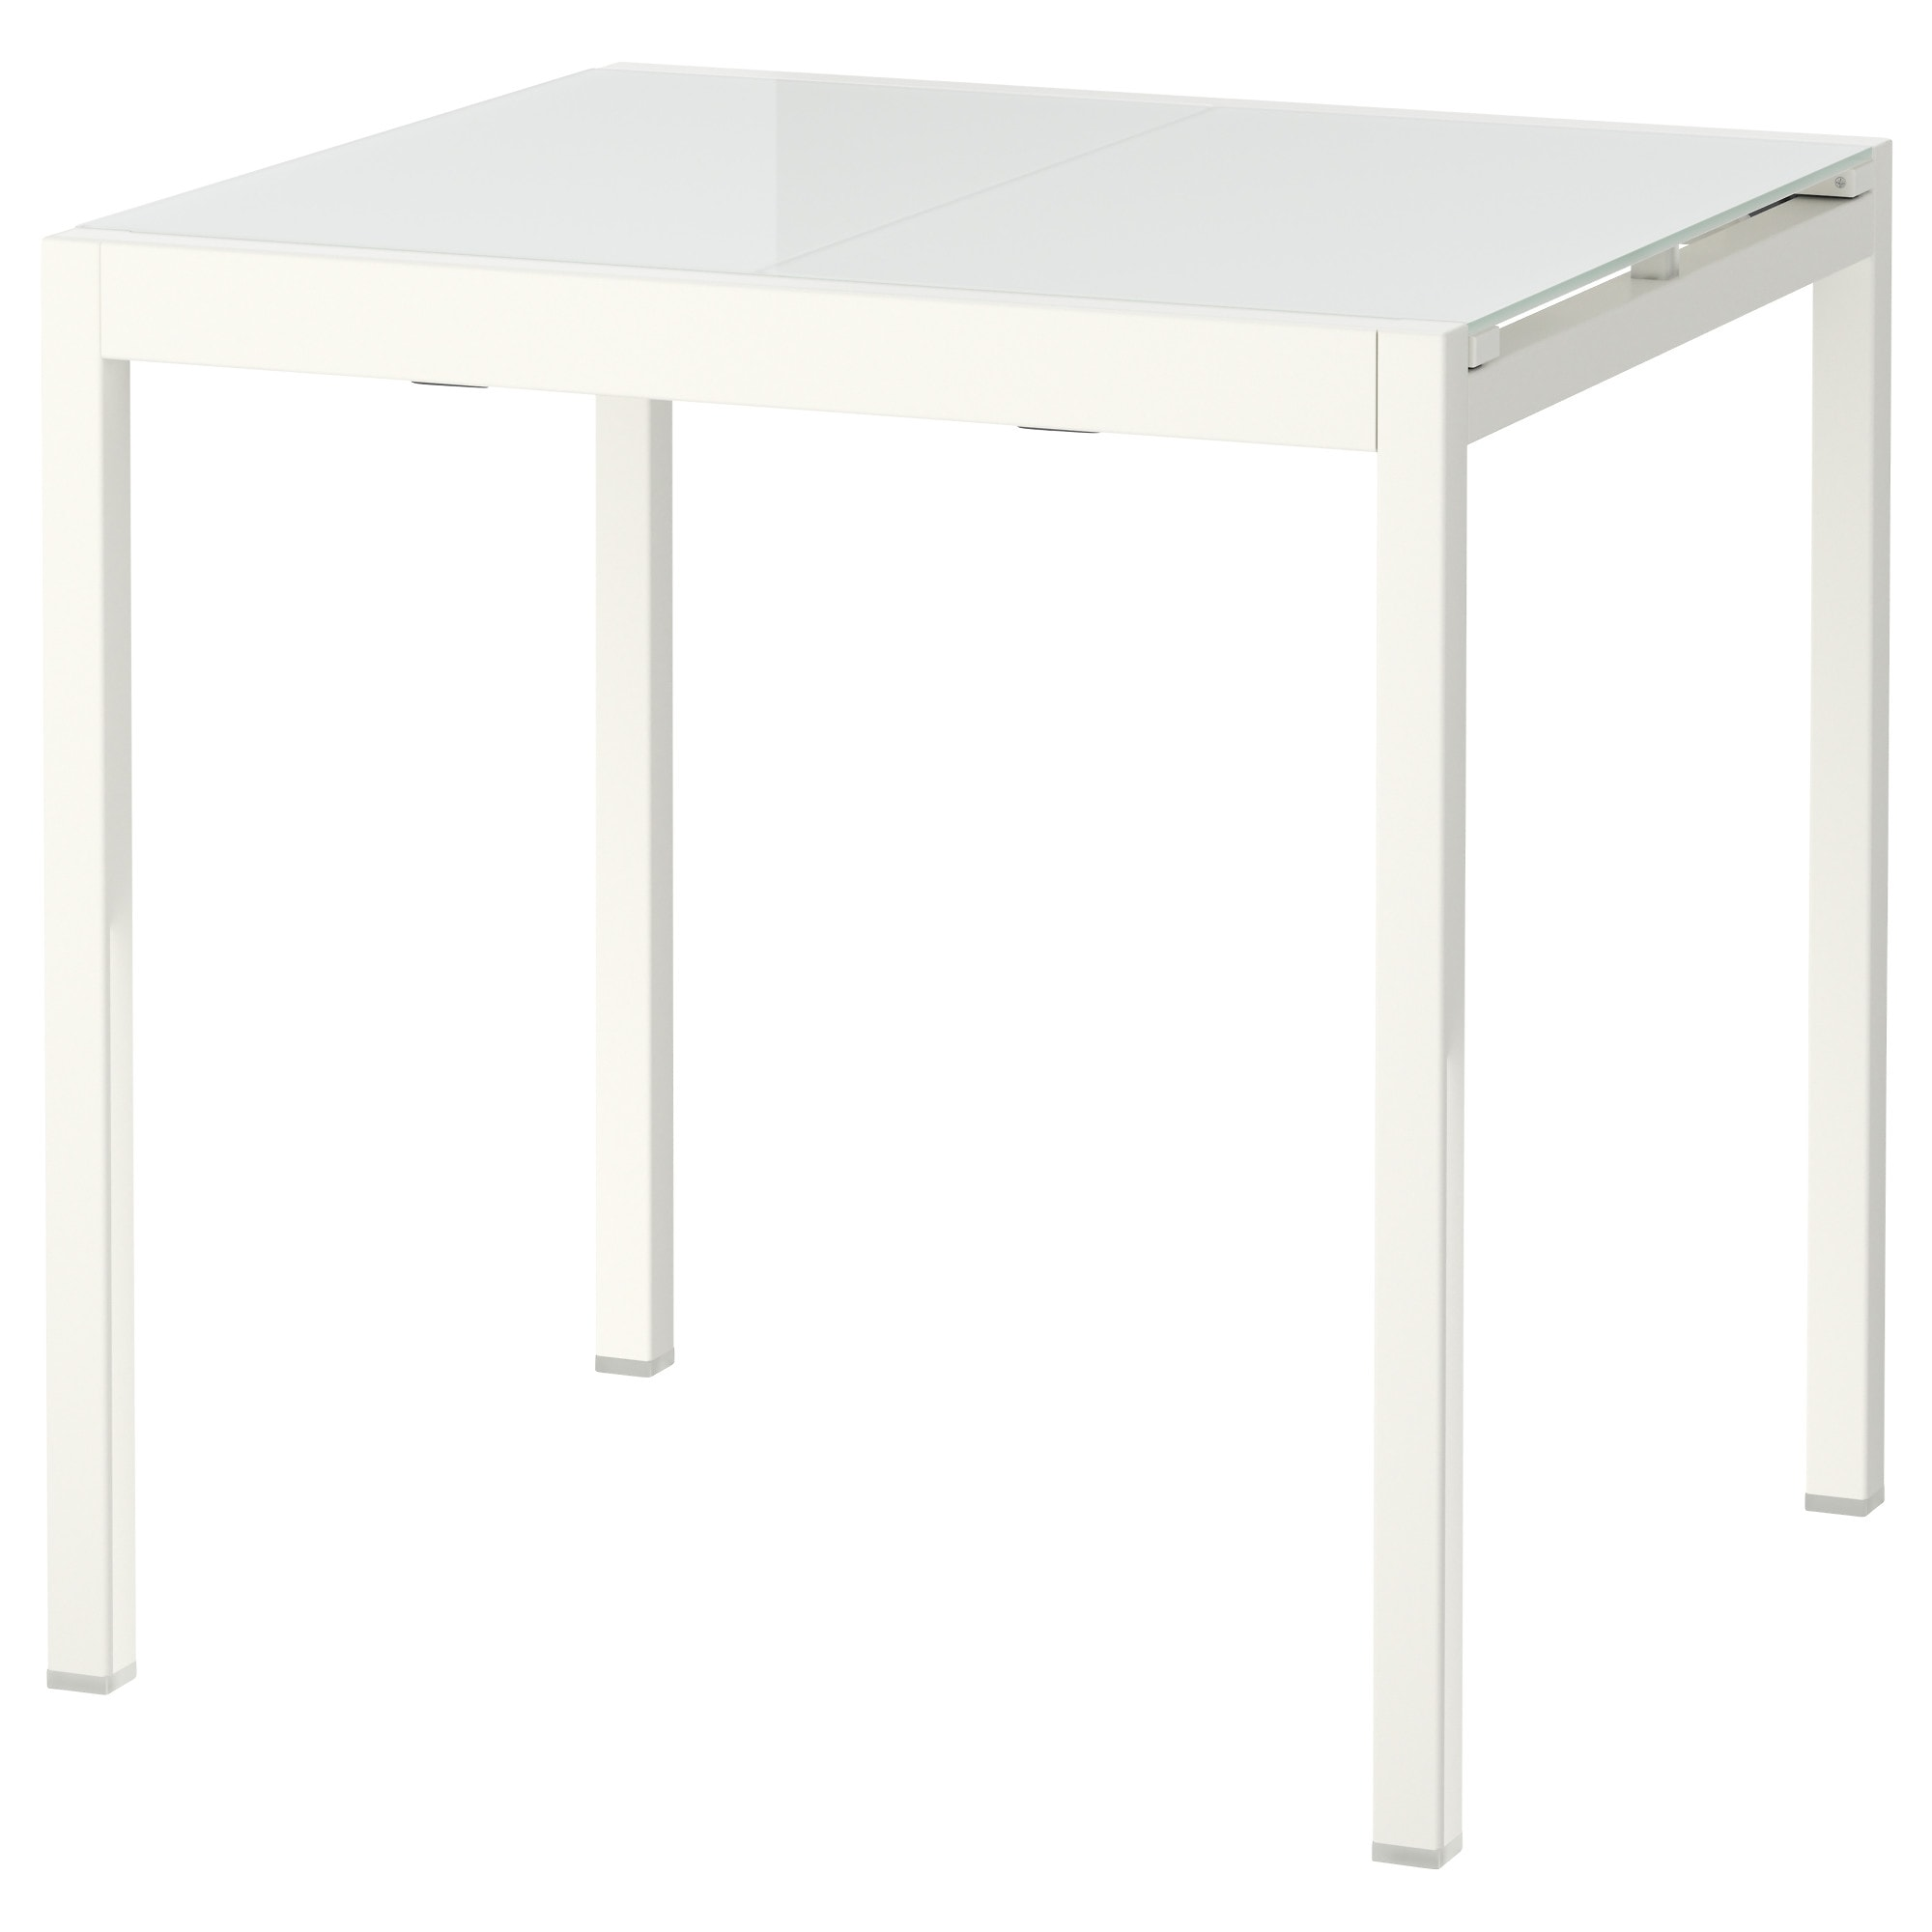 Table Blanche Ronde Ikea Table Blanche Ronde Ikea With Table Blanche Ronde Ikea Similar Images